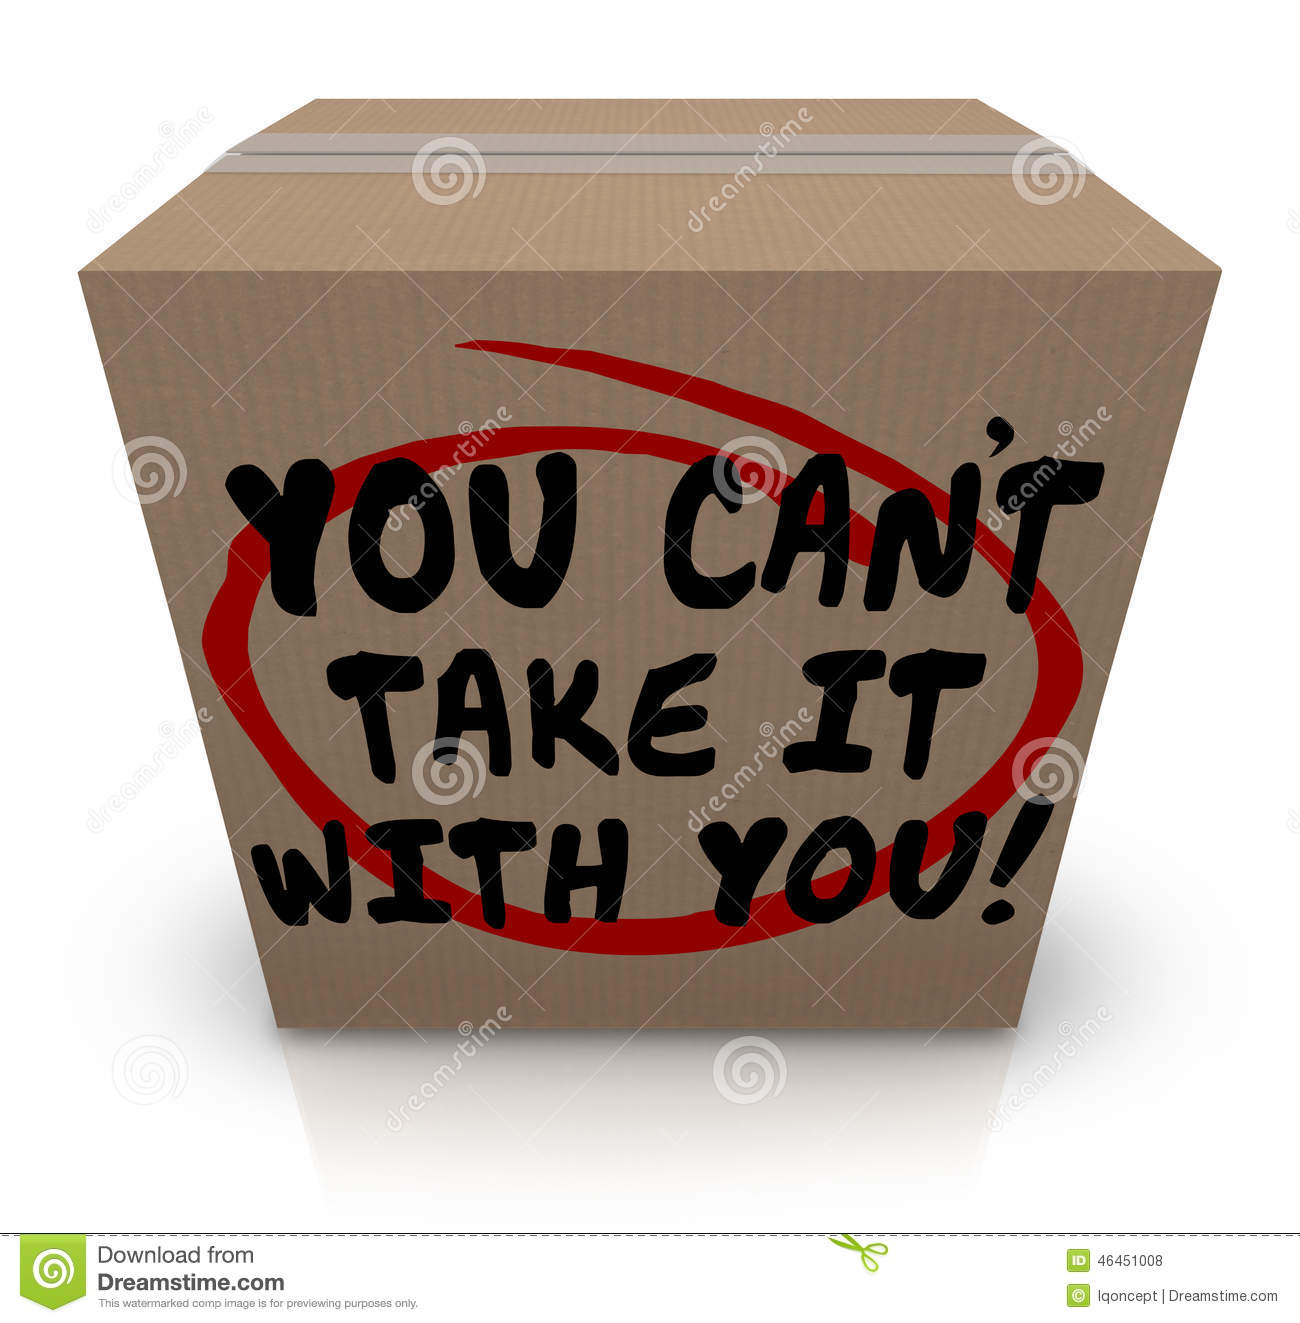 You Cant Take It With You Words Cardboard Box Share Donate